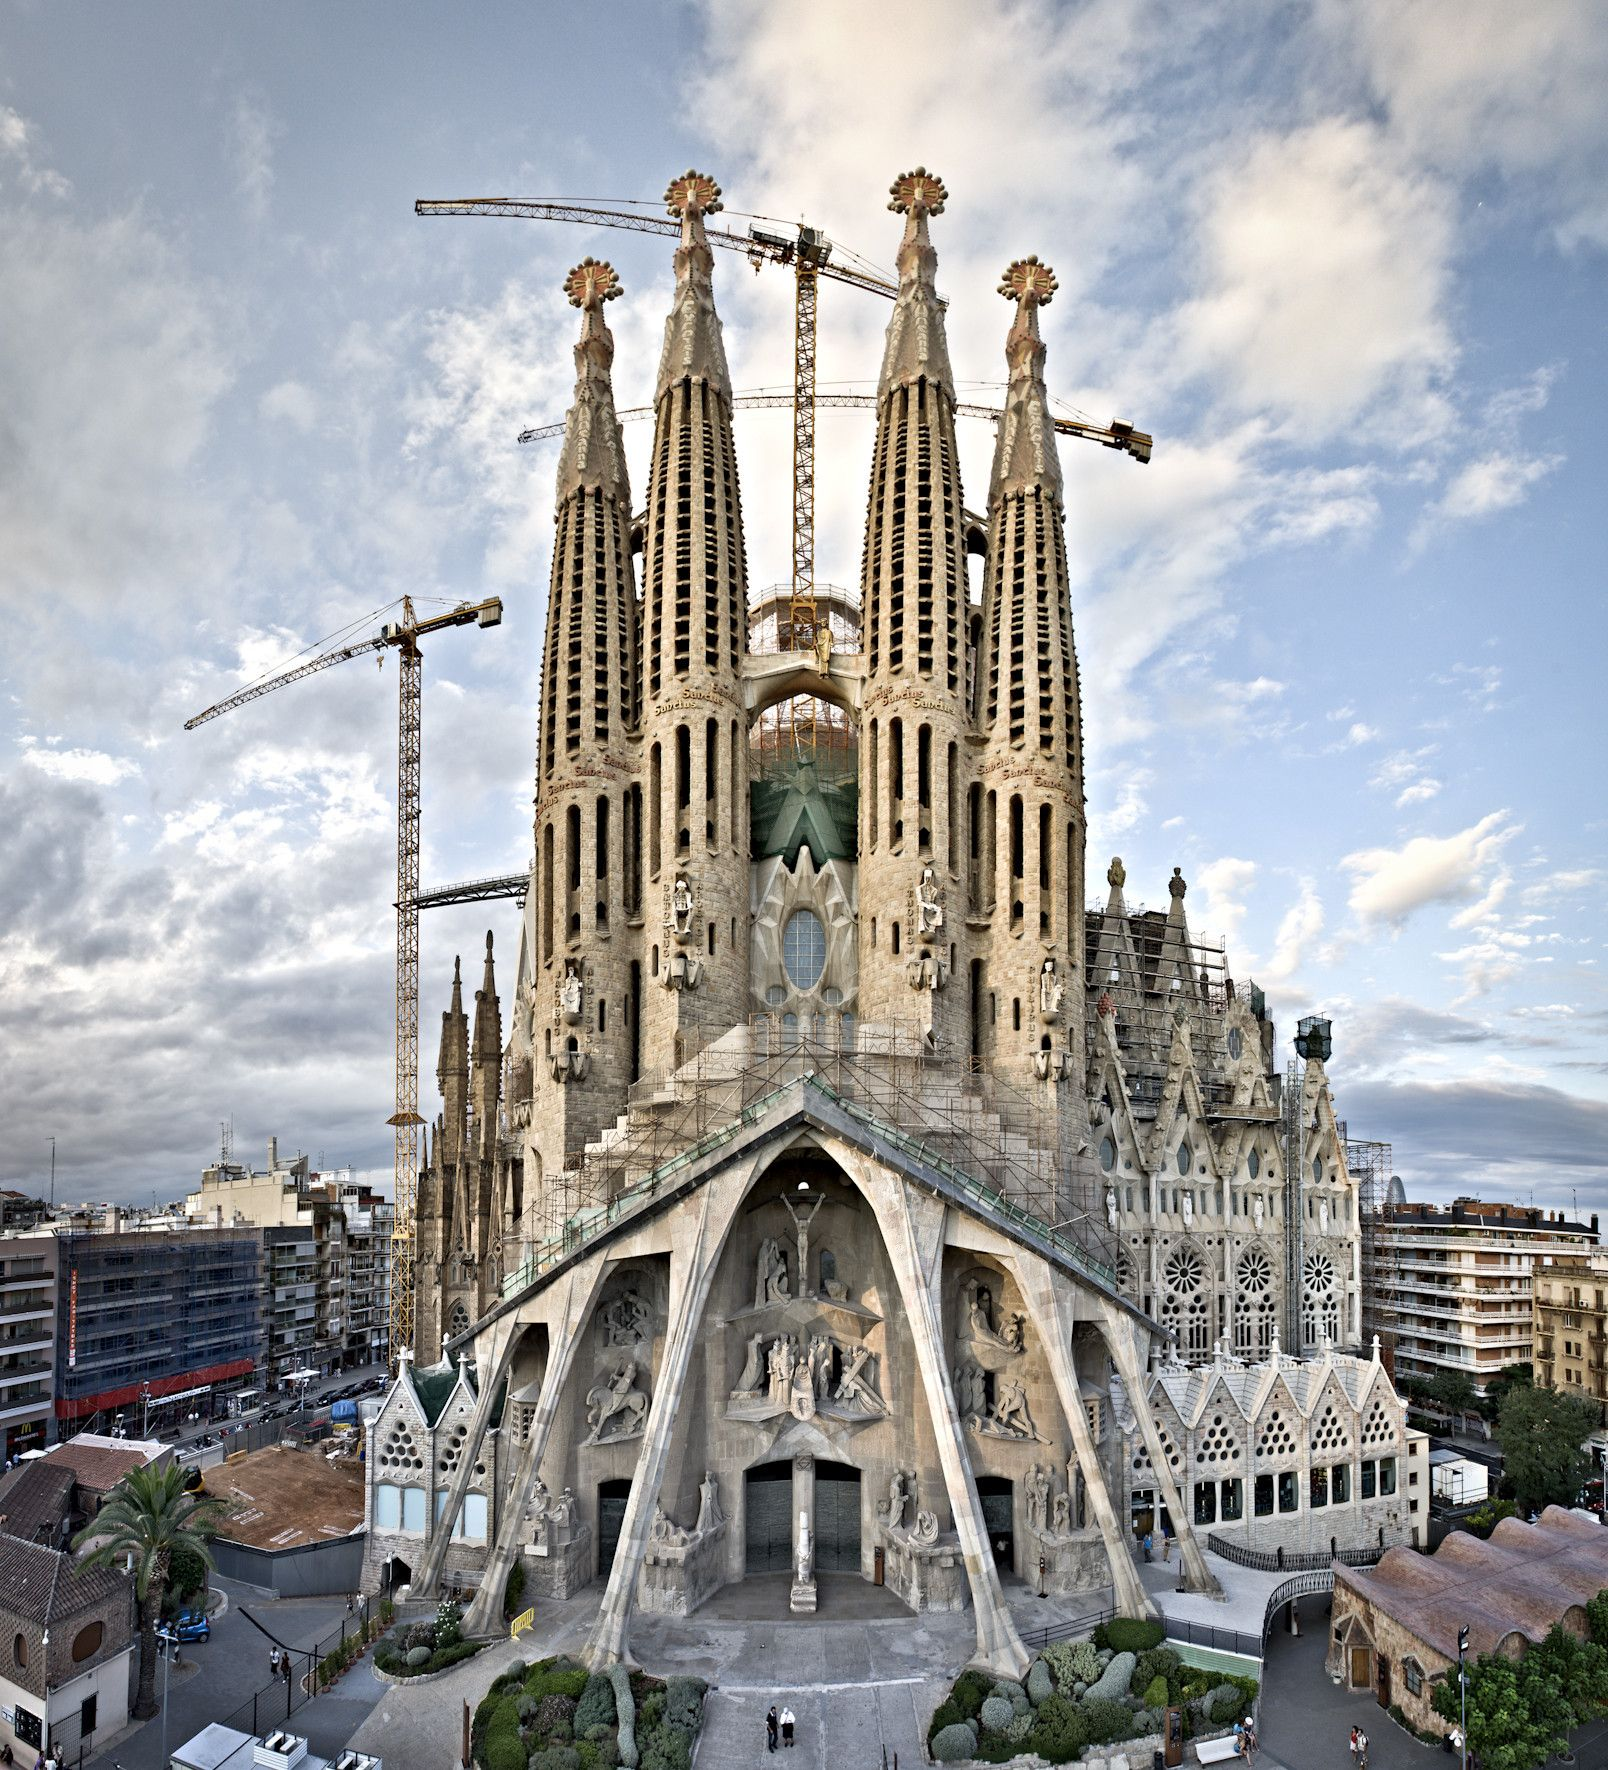 Built By Antoni Gaudi In Barcelona Spain With Surface 45000 Images John Kennan Construction Of The Temple Expiatori De La Sagrada Familia Began